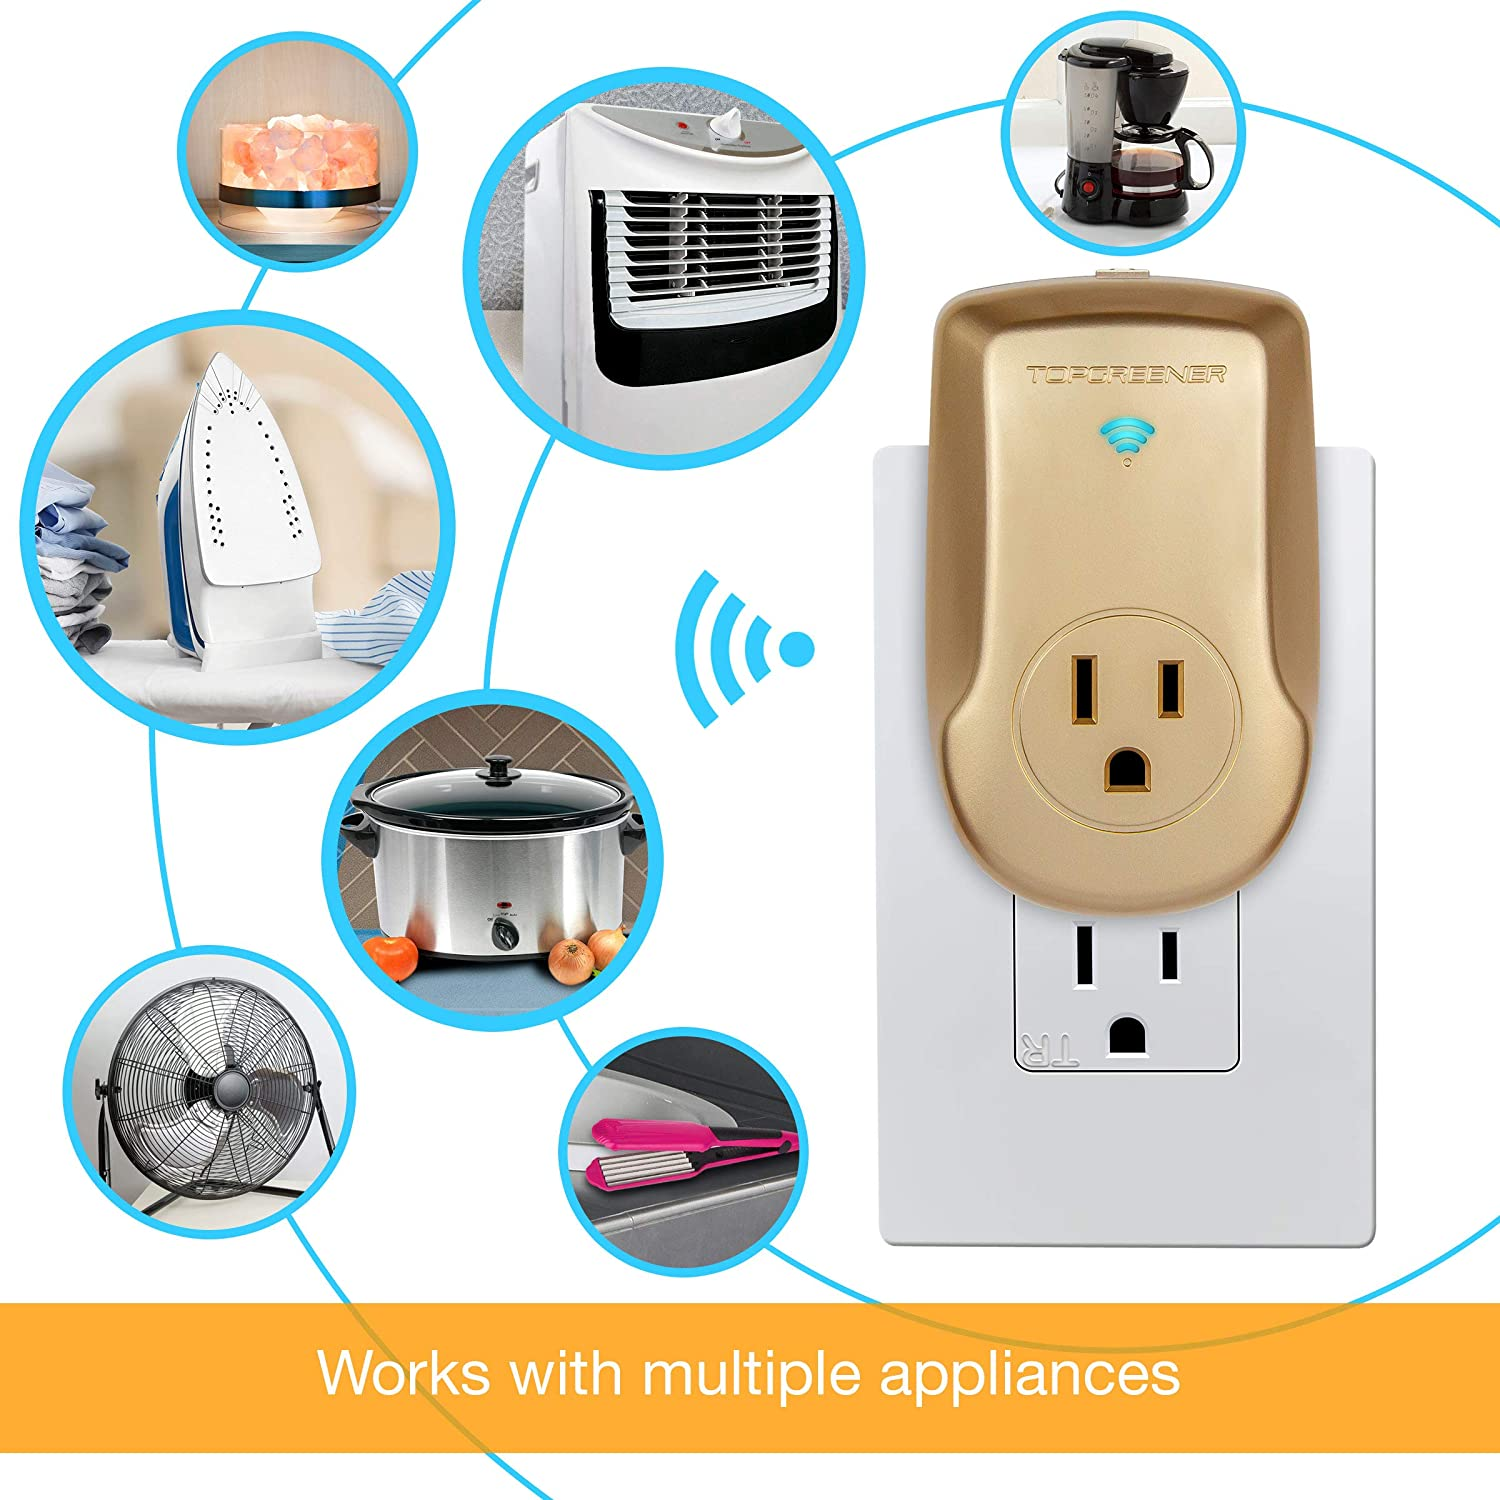 Topgreener Smart Wi Fi Powerful Plug With Energy Monitoring Can Your Electrical Outlets Protect Against A House Fire Outlet 15a Control Lights And Appliances From Anywhere No Hub Required